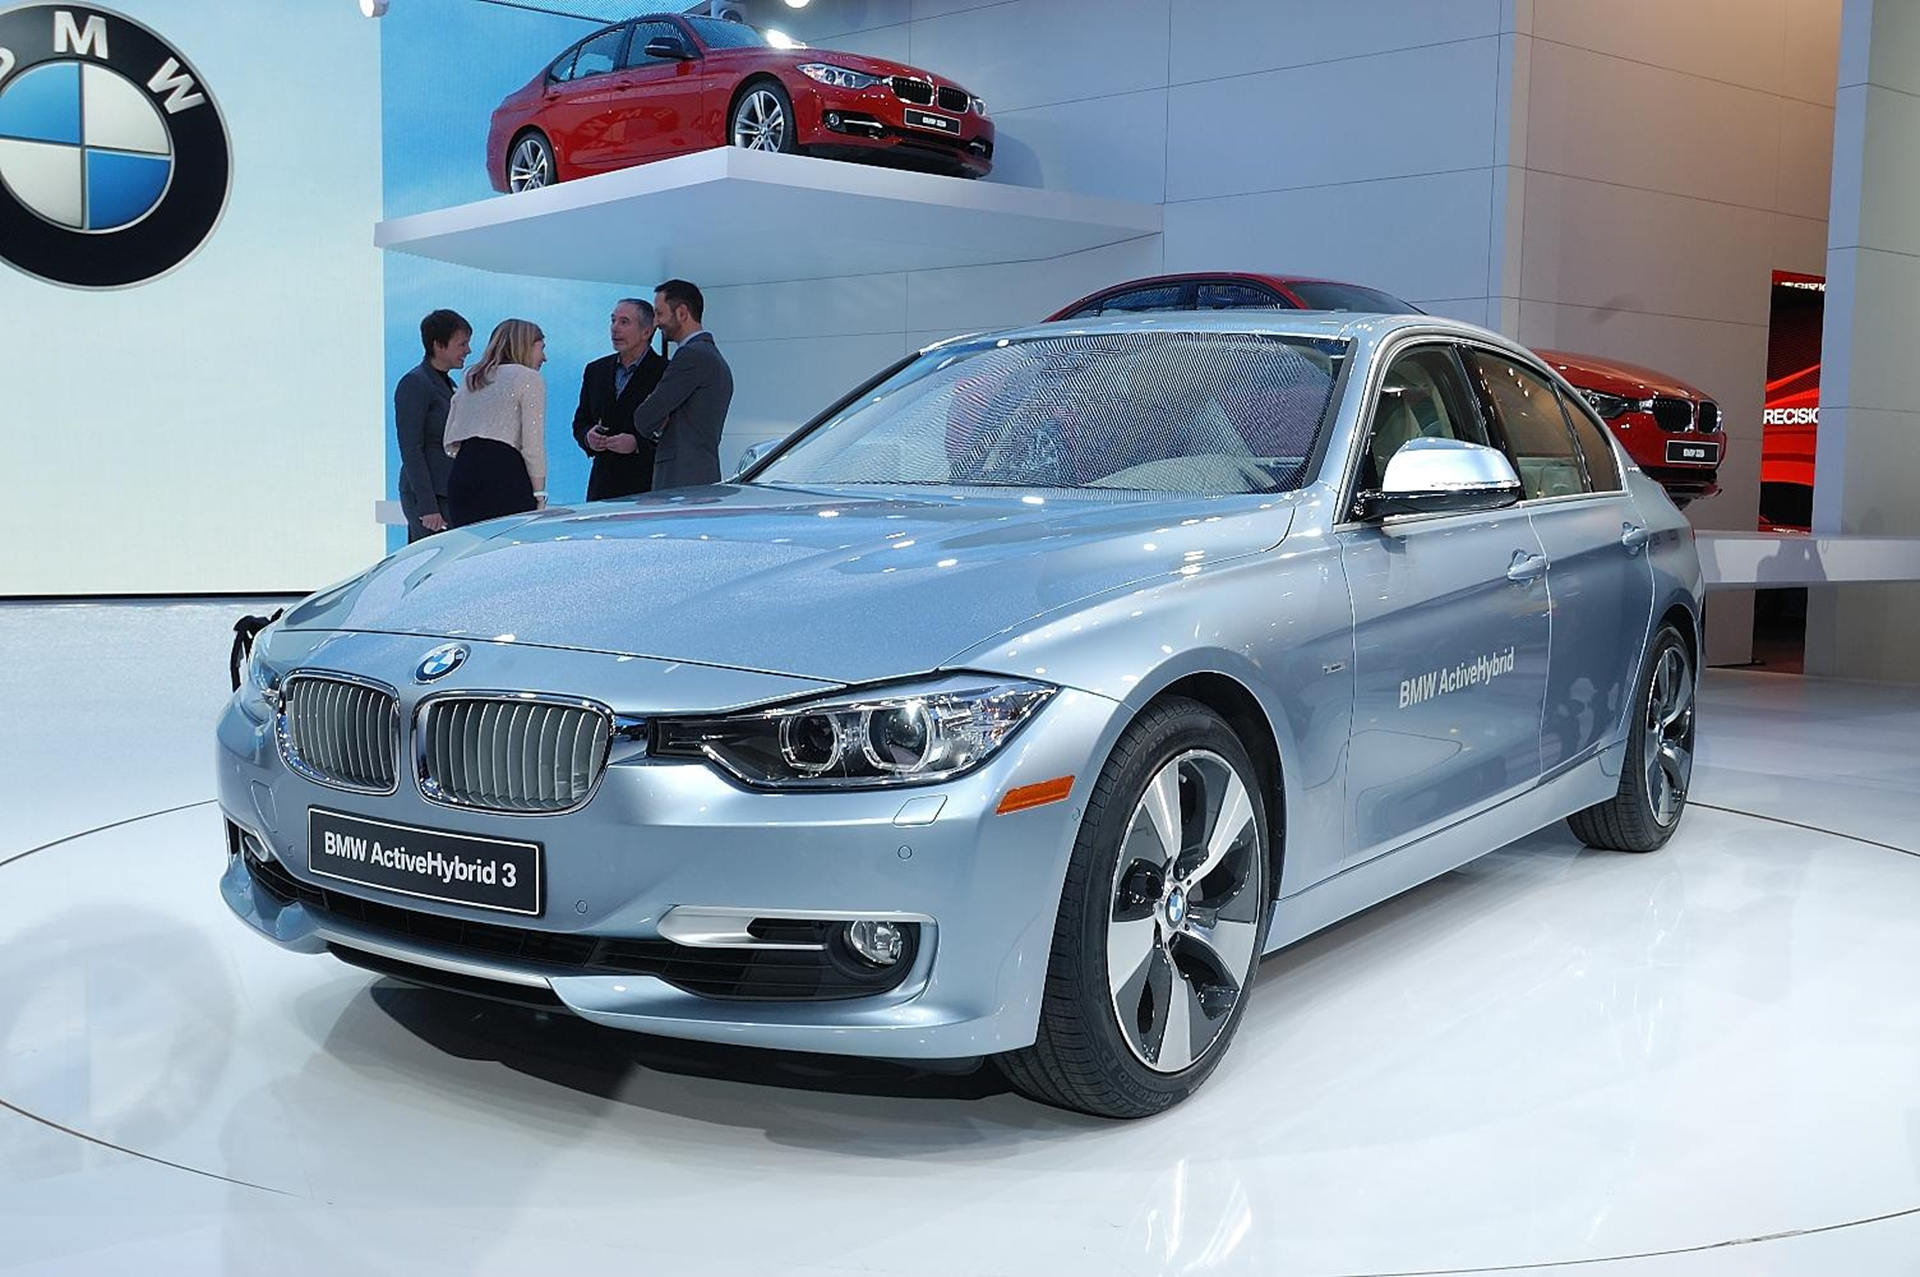 BMW ActiveHybrid_2